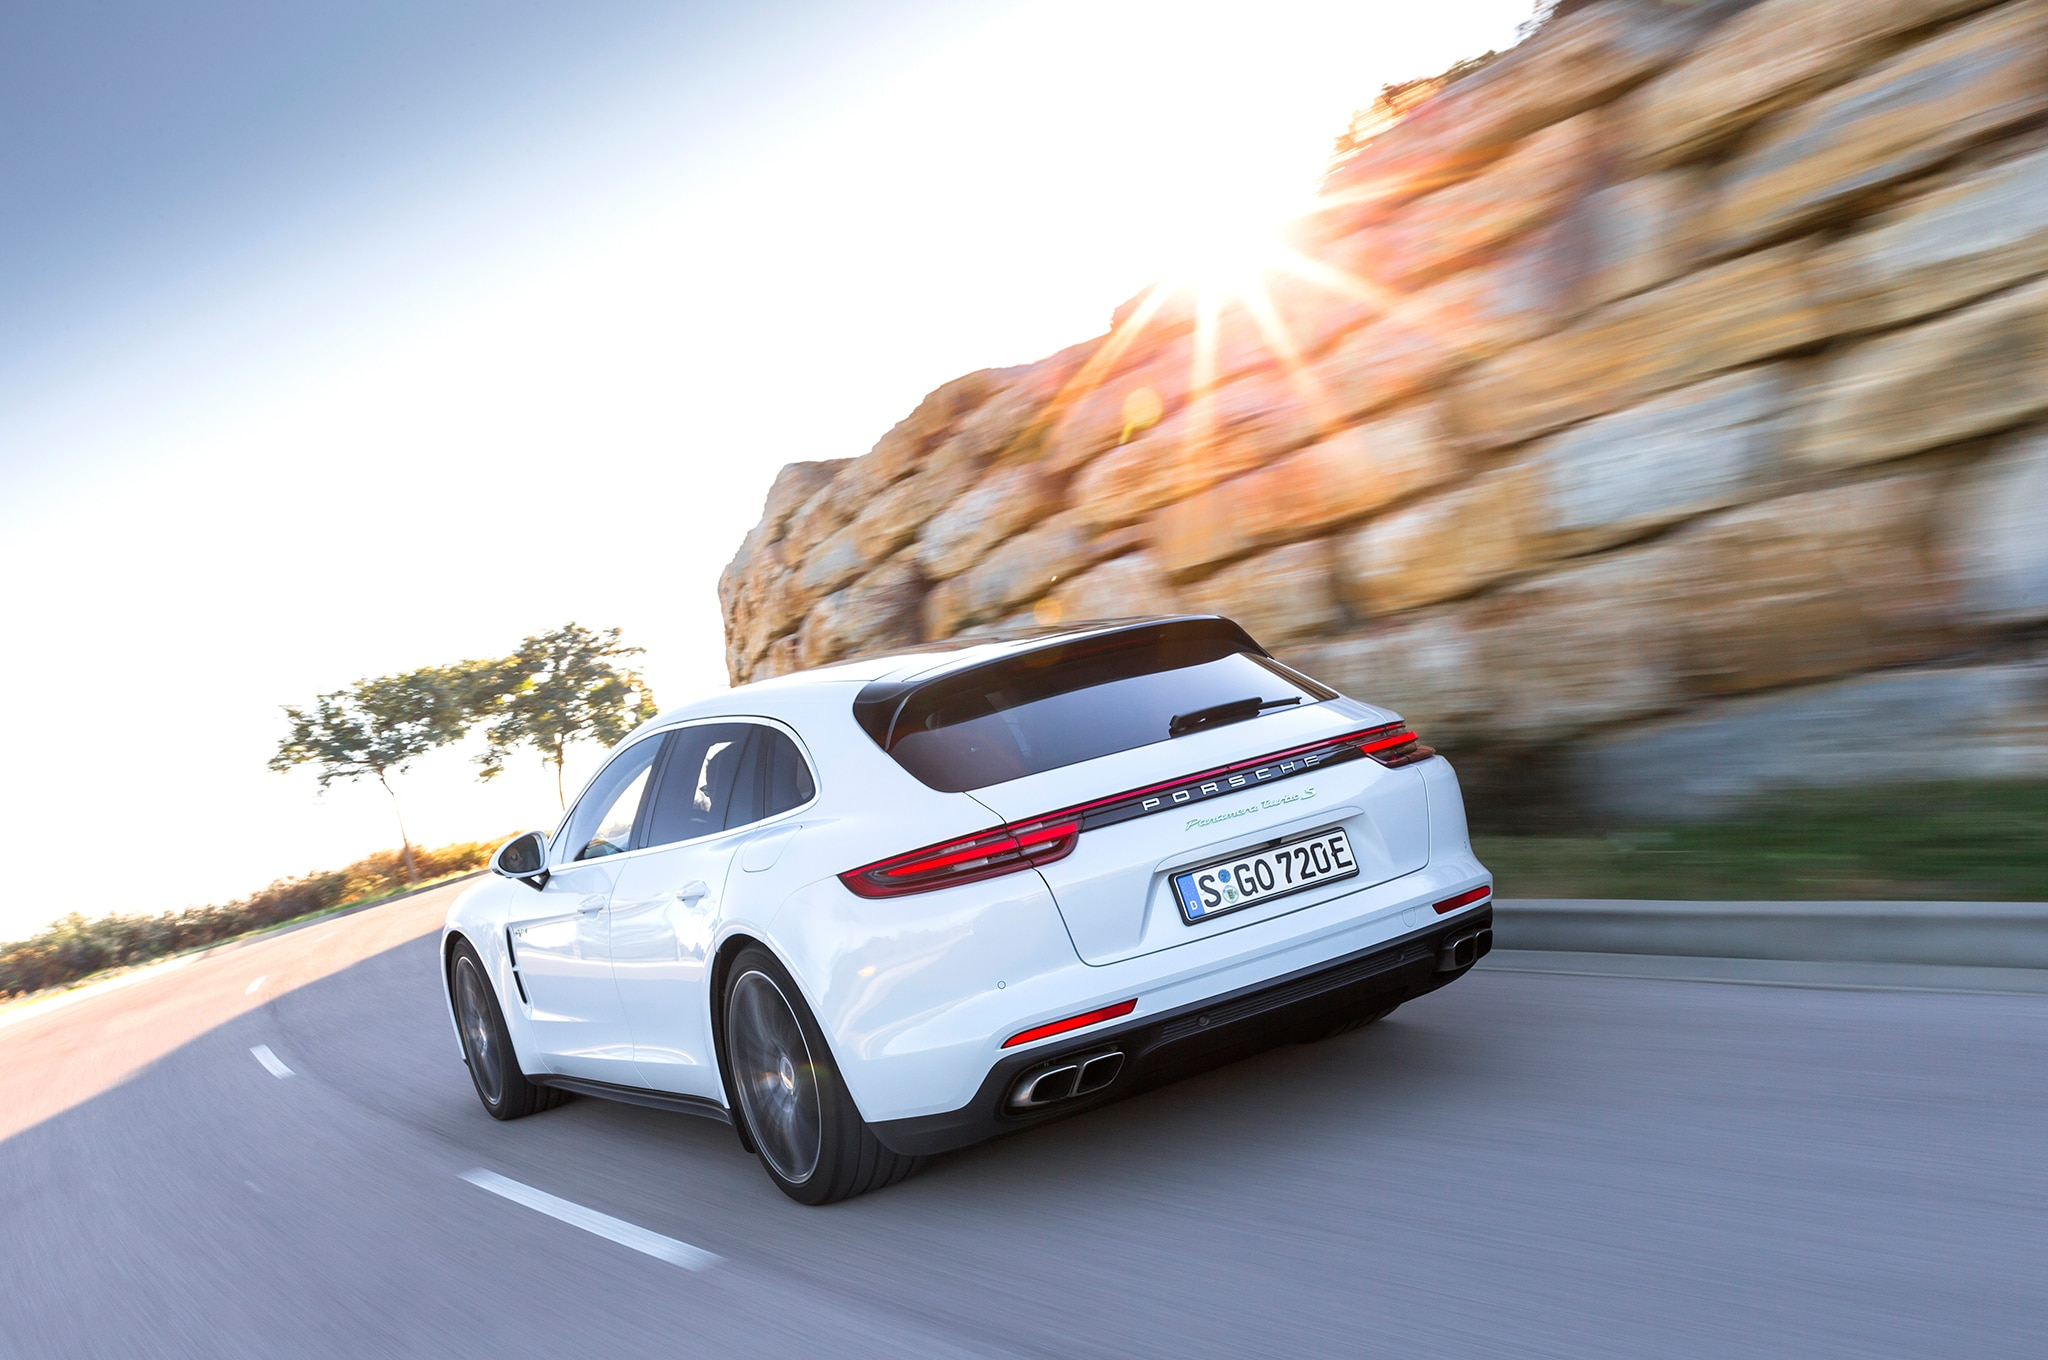 2018 Porsche Panamera Turbo S E Hybrid Sport Turismo Rear Three Quarter In Motion 04